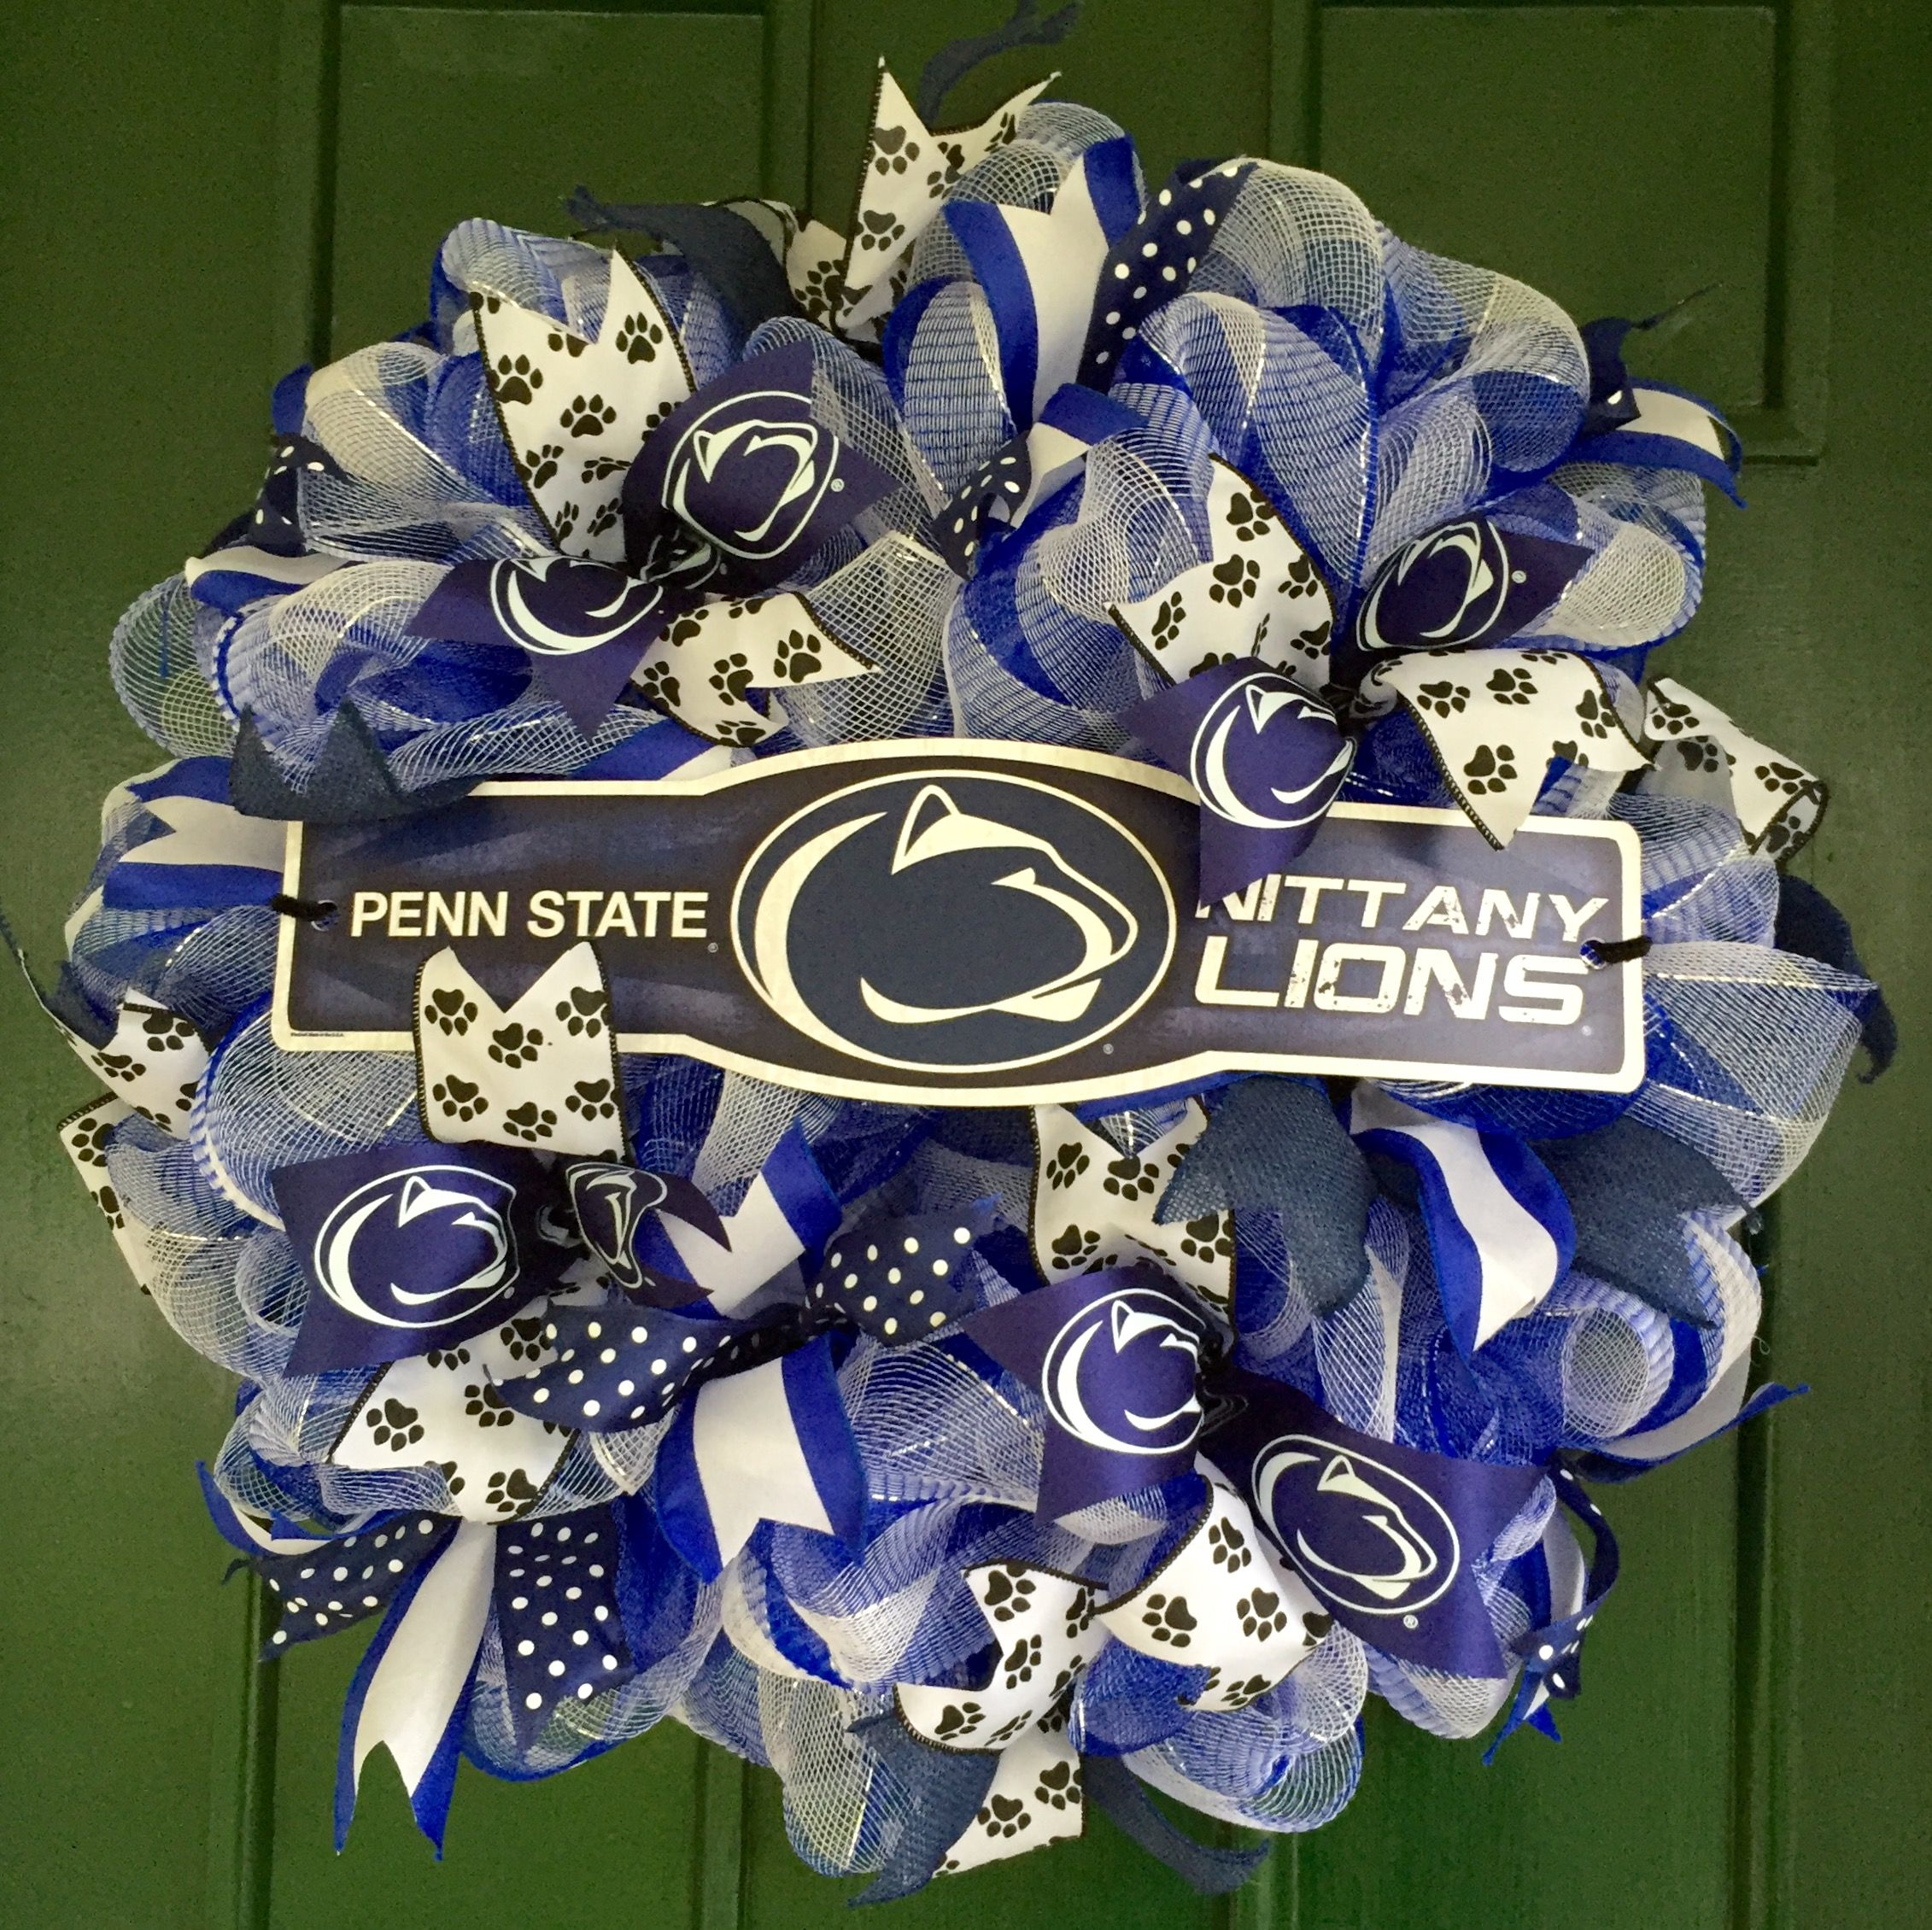 This would be great for any Penn State fan! And a great ...